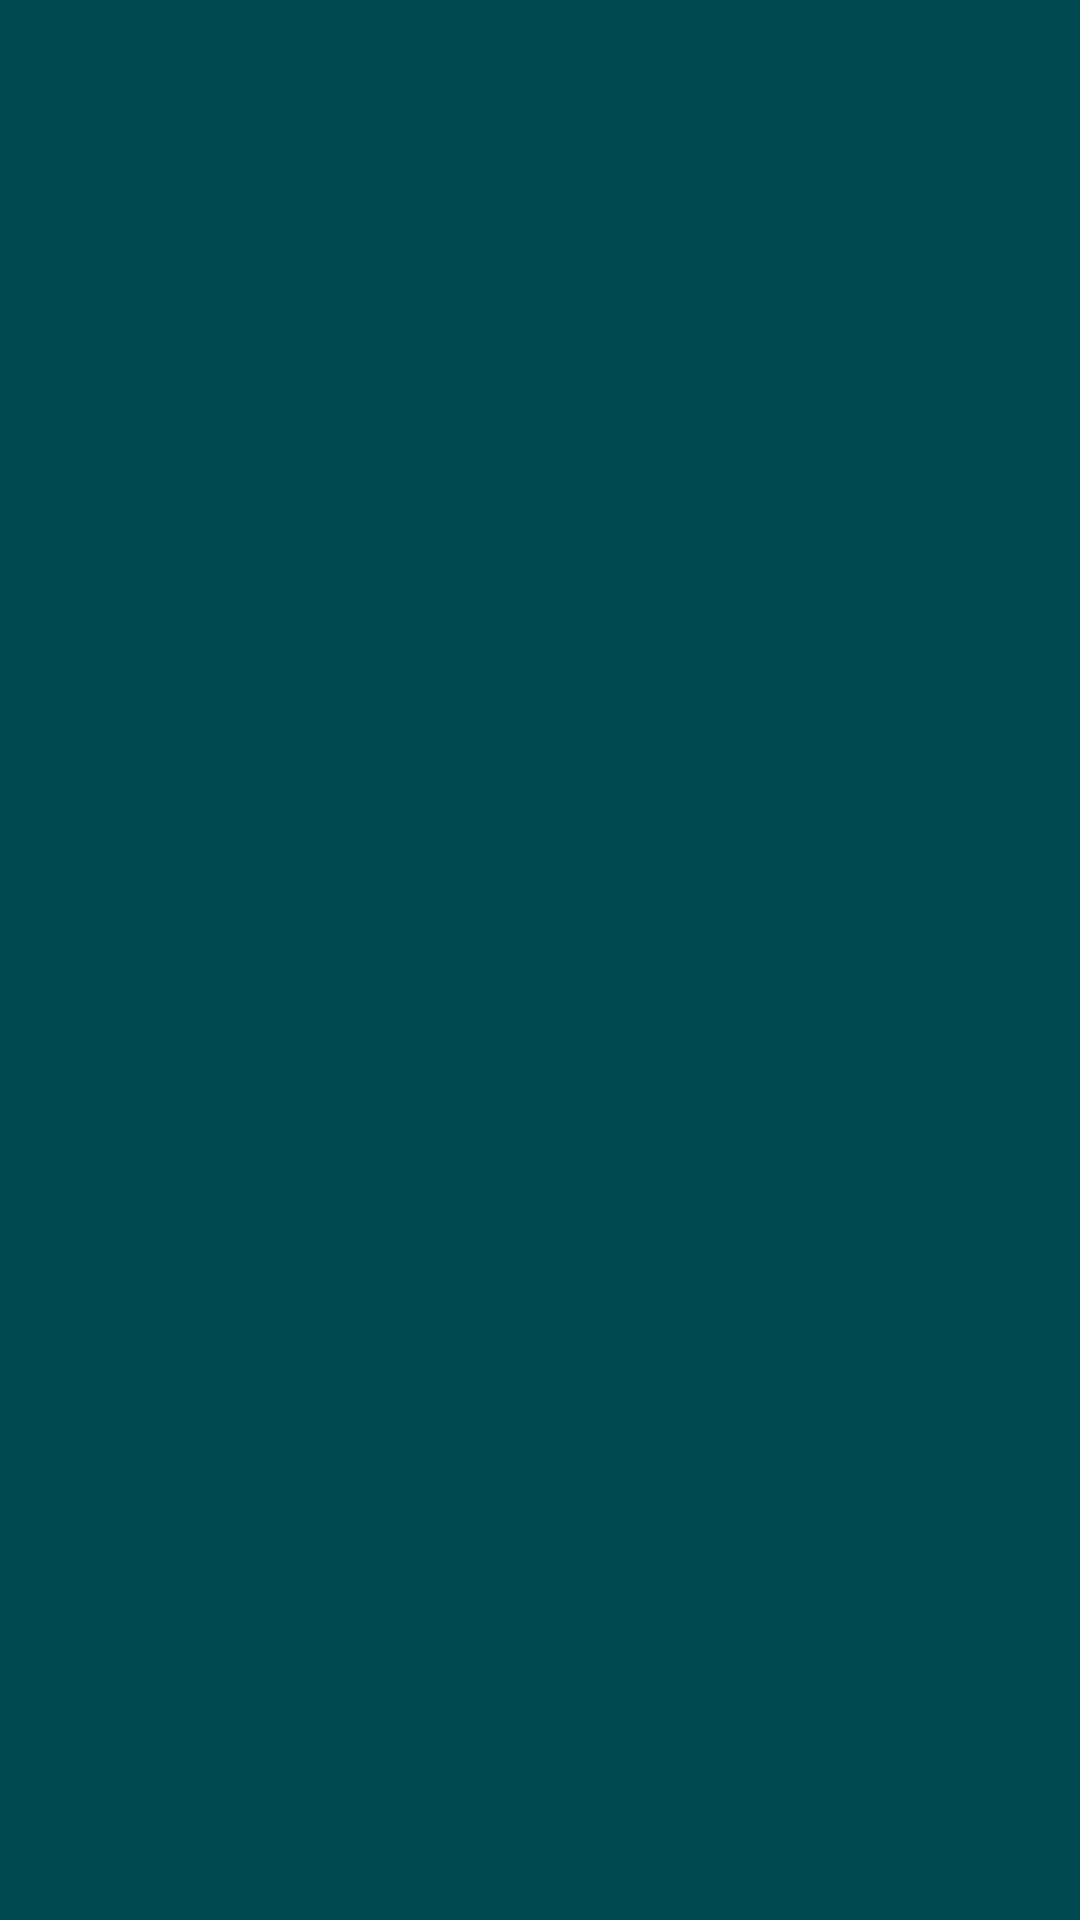 1080x1920 Midnight Green Solid Color Background